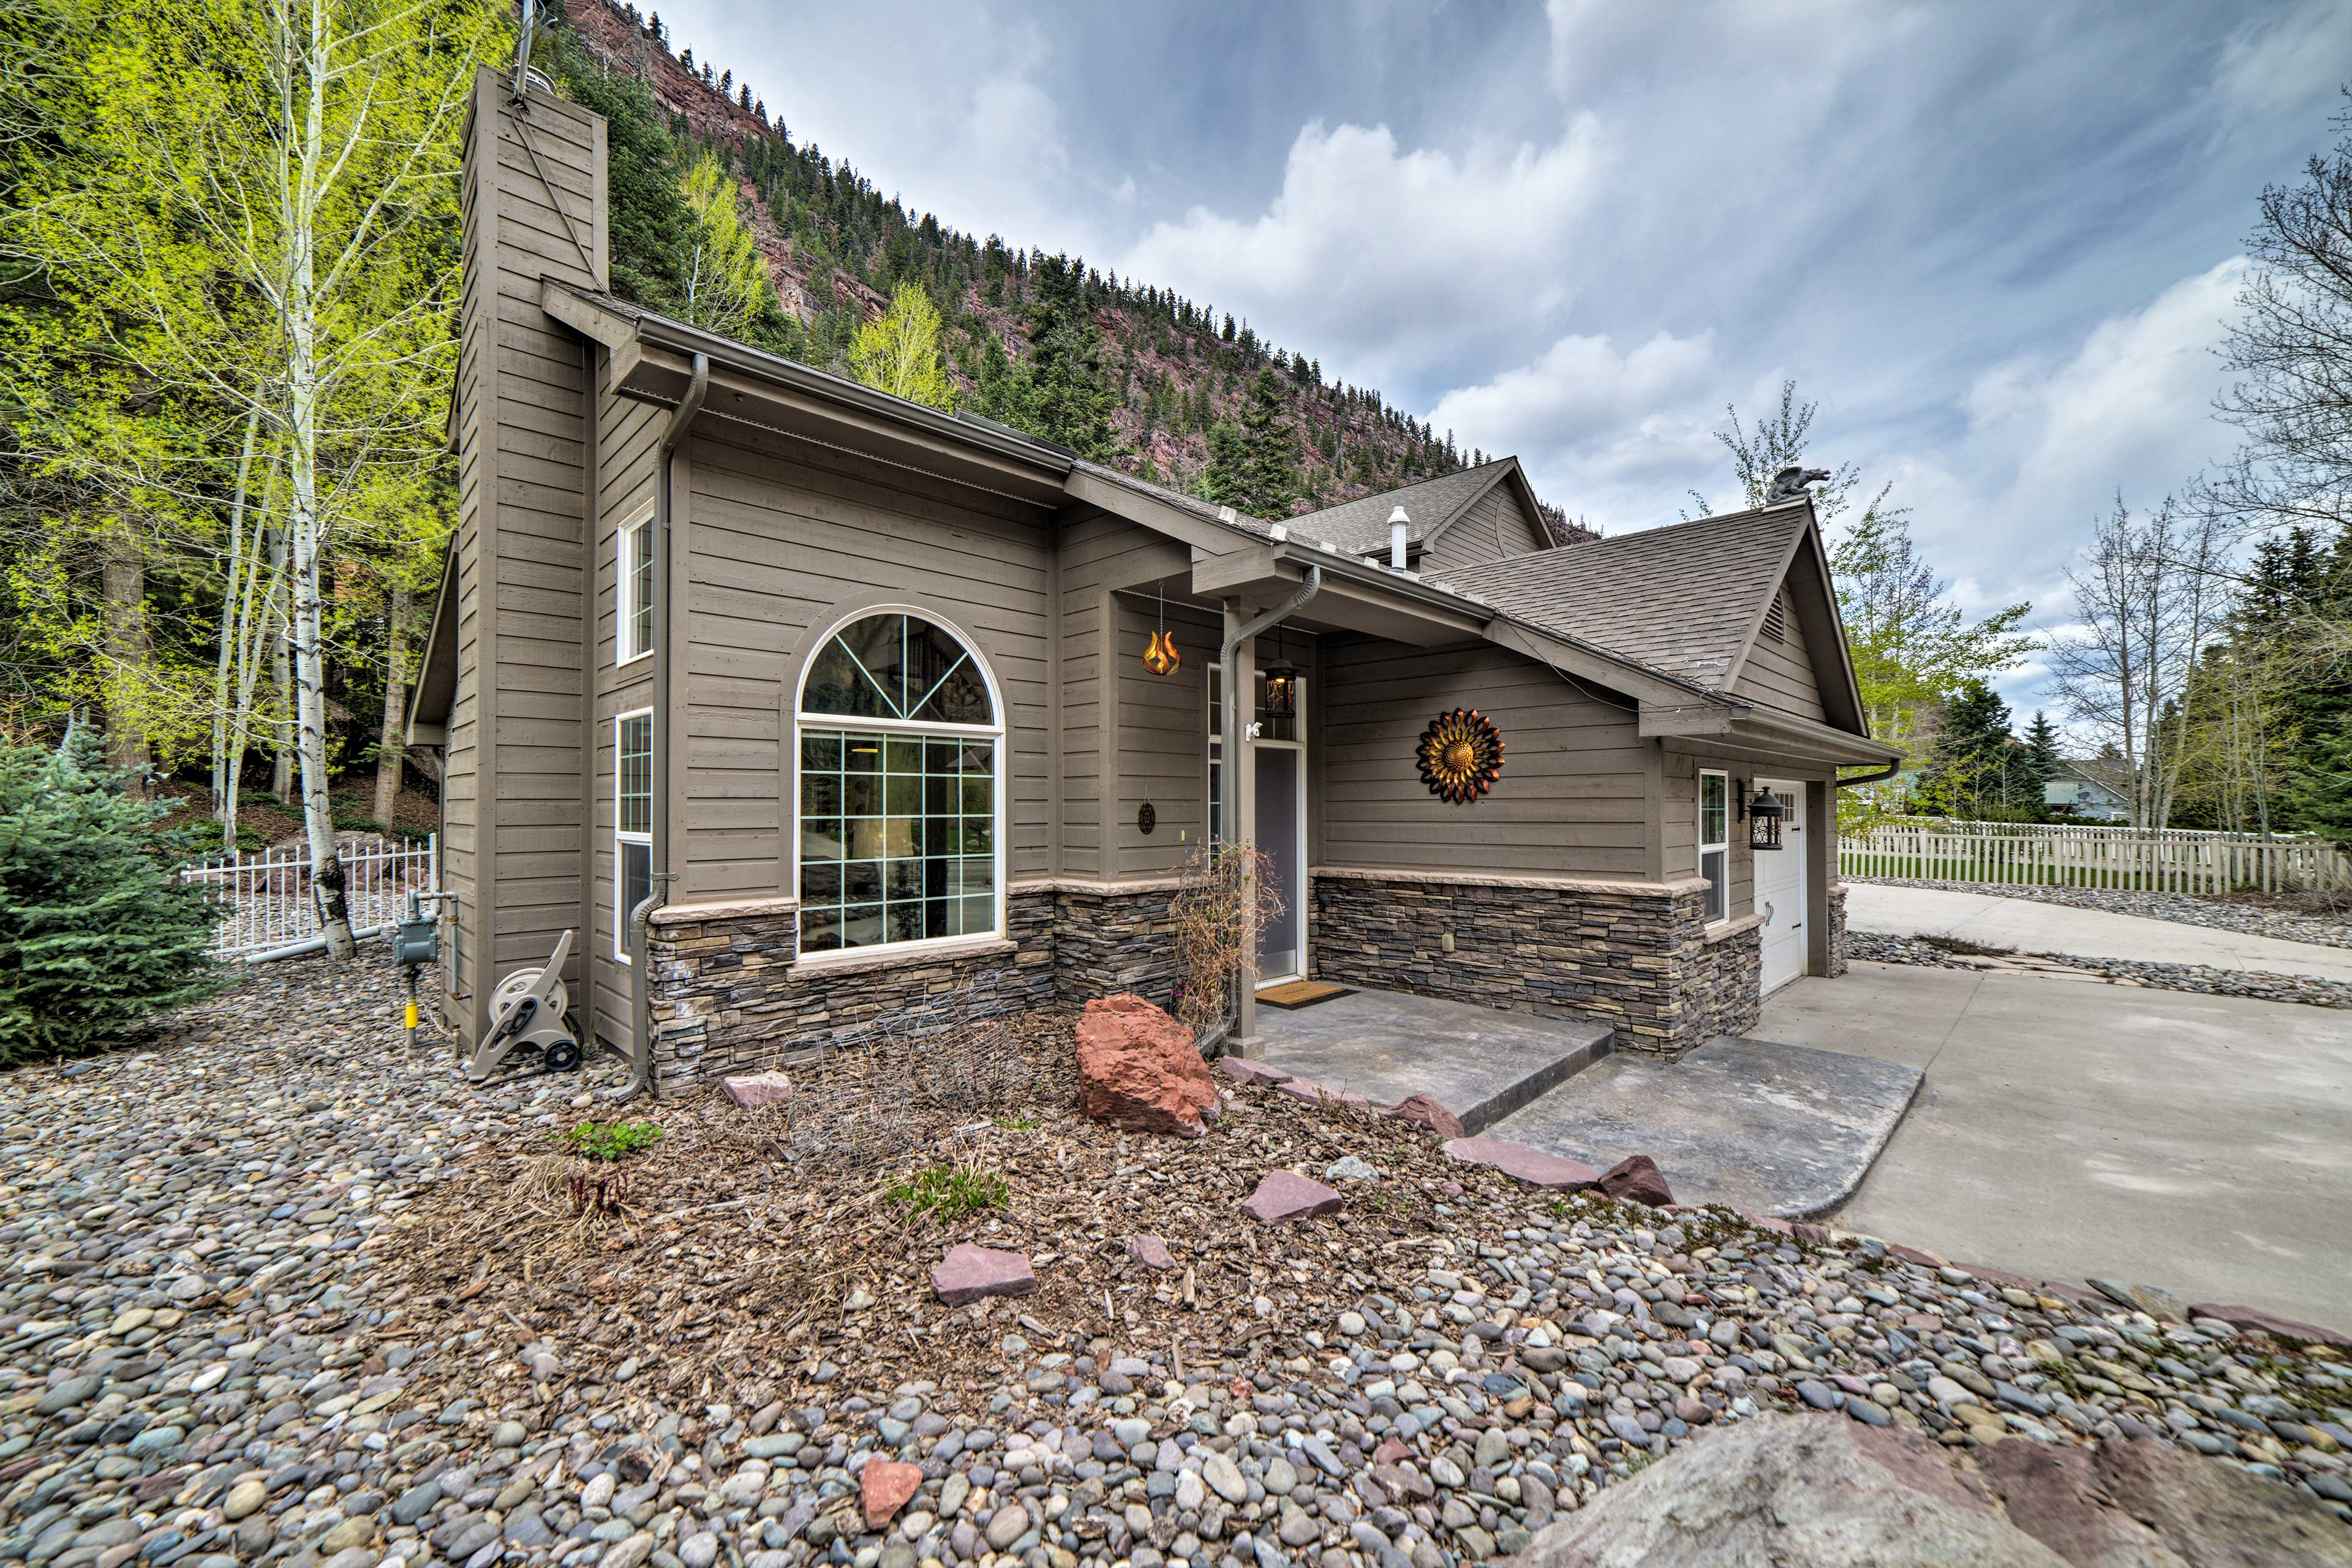 The home is nestled in the San Juan Mountains.